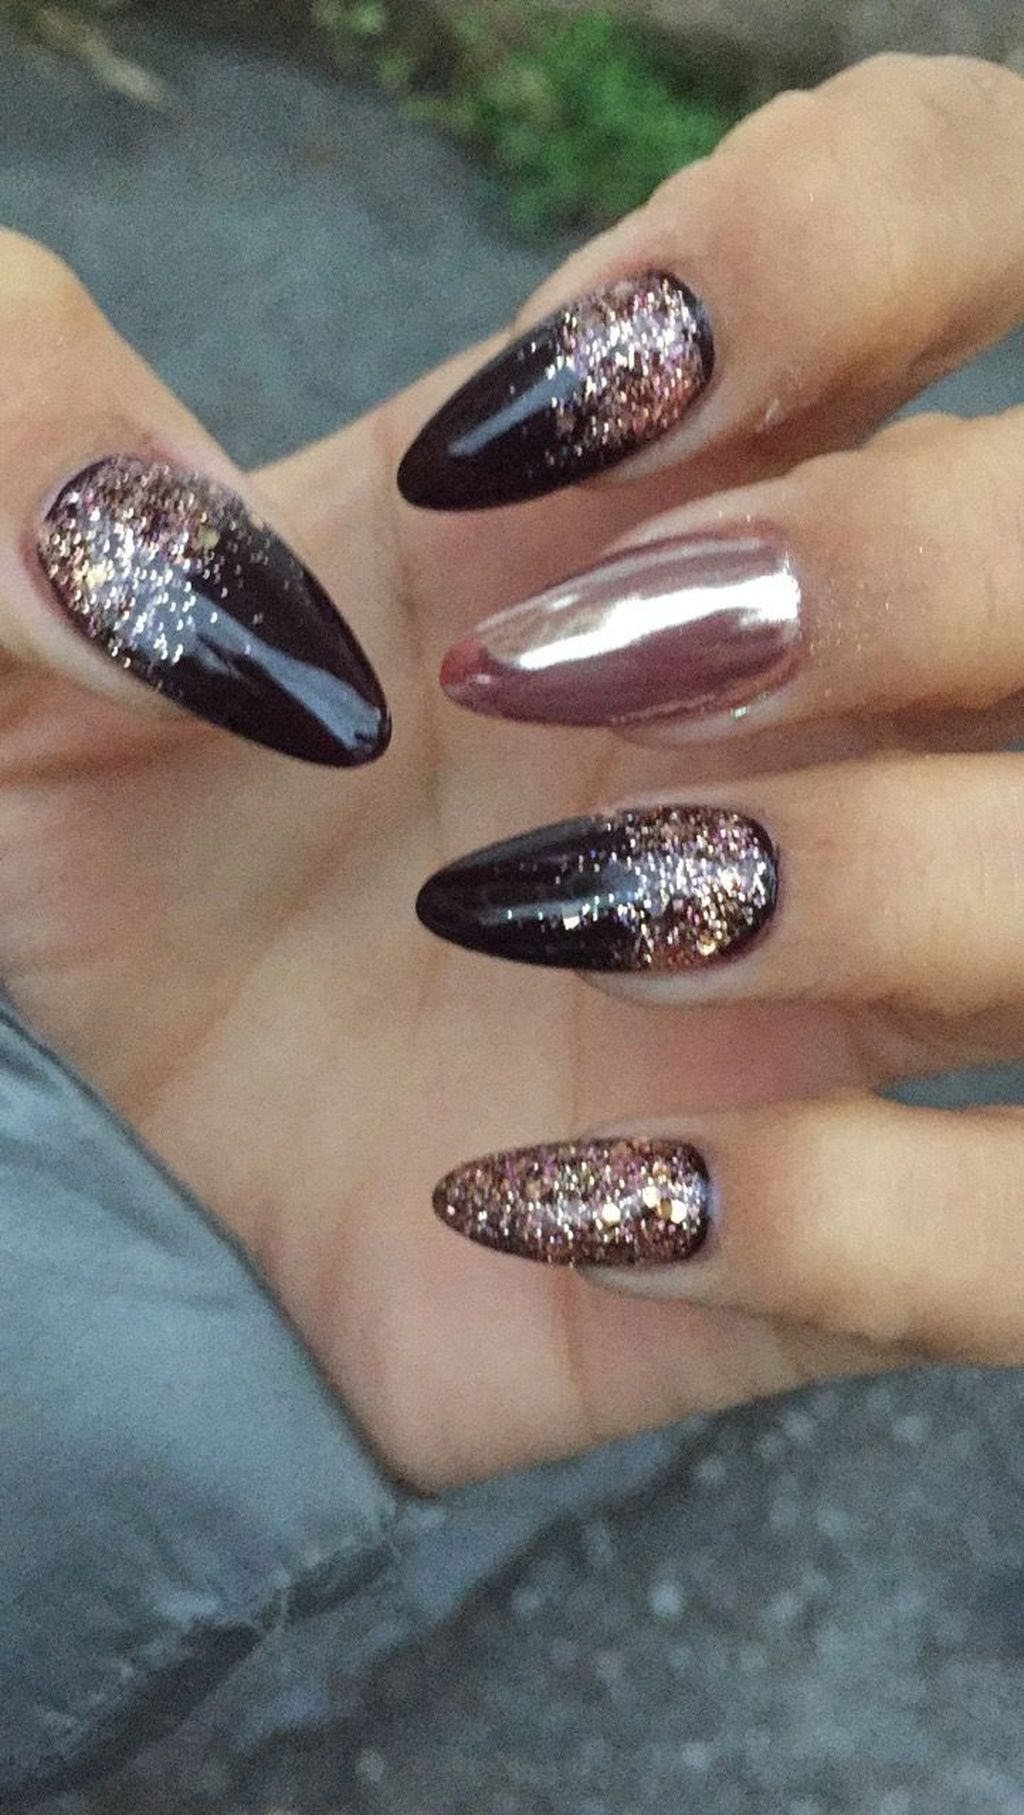 50 Exciting Ideas For New Years Nails To Warm Up Your Holiday Mood